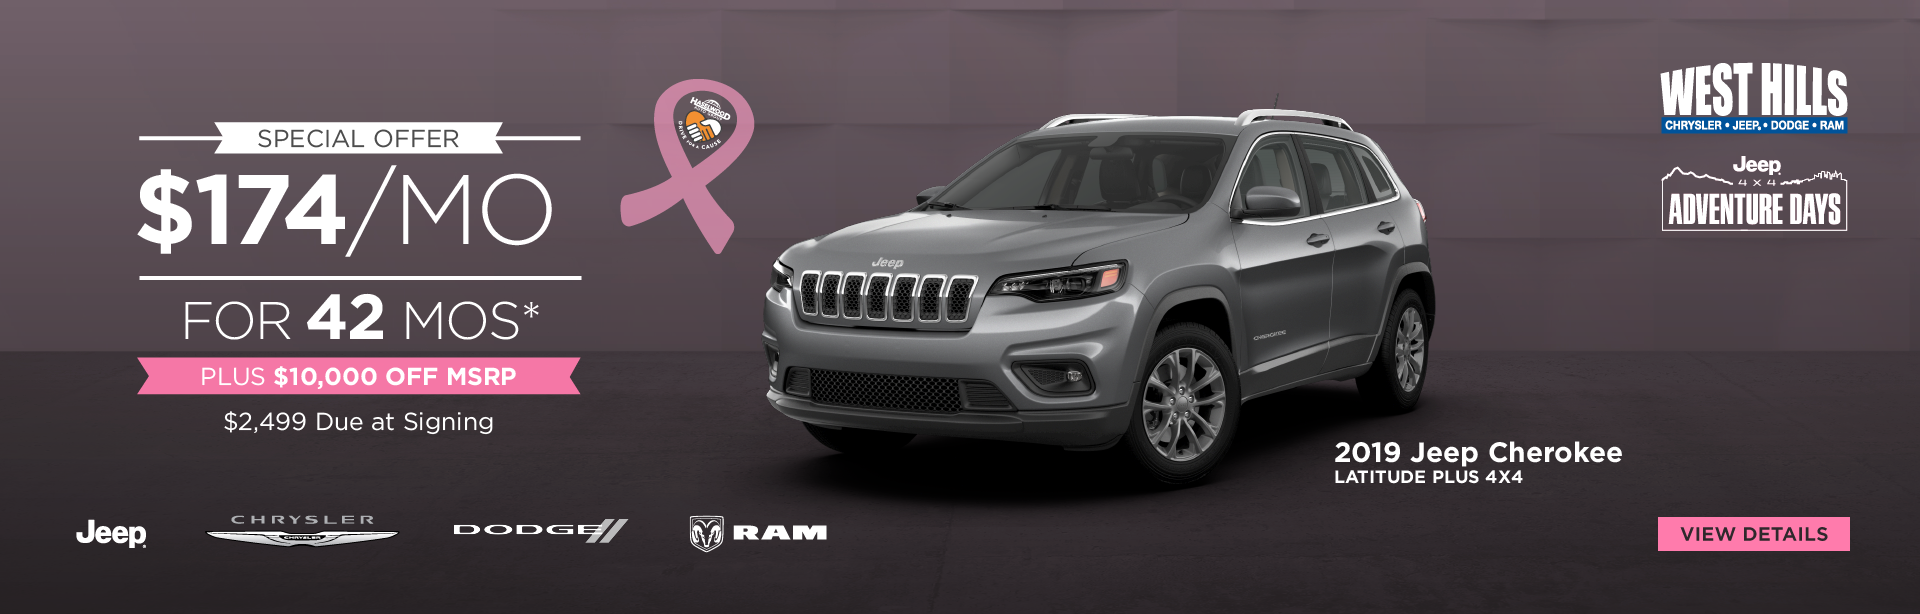 2019 Jeep Compass Latitude  MSRP: $28,985 WHCJDR Discount: $4,000 Rebate: $5,000 Sale Price: $19,985* SAVE $9,000 OFF MSRP*    * Offer valid on 2019 Jeep Compass Latitude. VIN: 3C4NJDBB7KT767536. MSRP: $28,985. WHCJDR Discount: $4,000. Rebate: $5,000. Sale Price: $19,985. Based on approval of program ID 43CK1B2, 44CKB3, WECKA1, WECKA, 70CK1. Subject to credit approval. Down payment and monthly payment may vary. Excludes taxes, tags, registration and title, insurance and dealer charges. A negotiable dealer documentary service fee of up to $150 may be added to the sale price or capitalized cost. Exp. 9/30/2019.